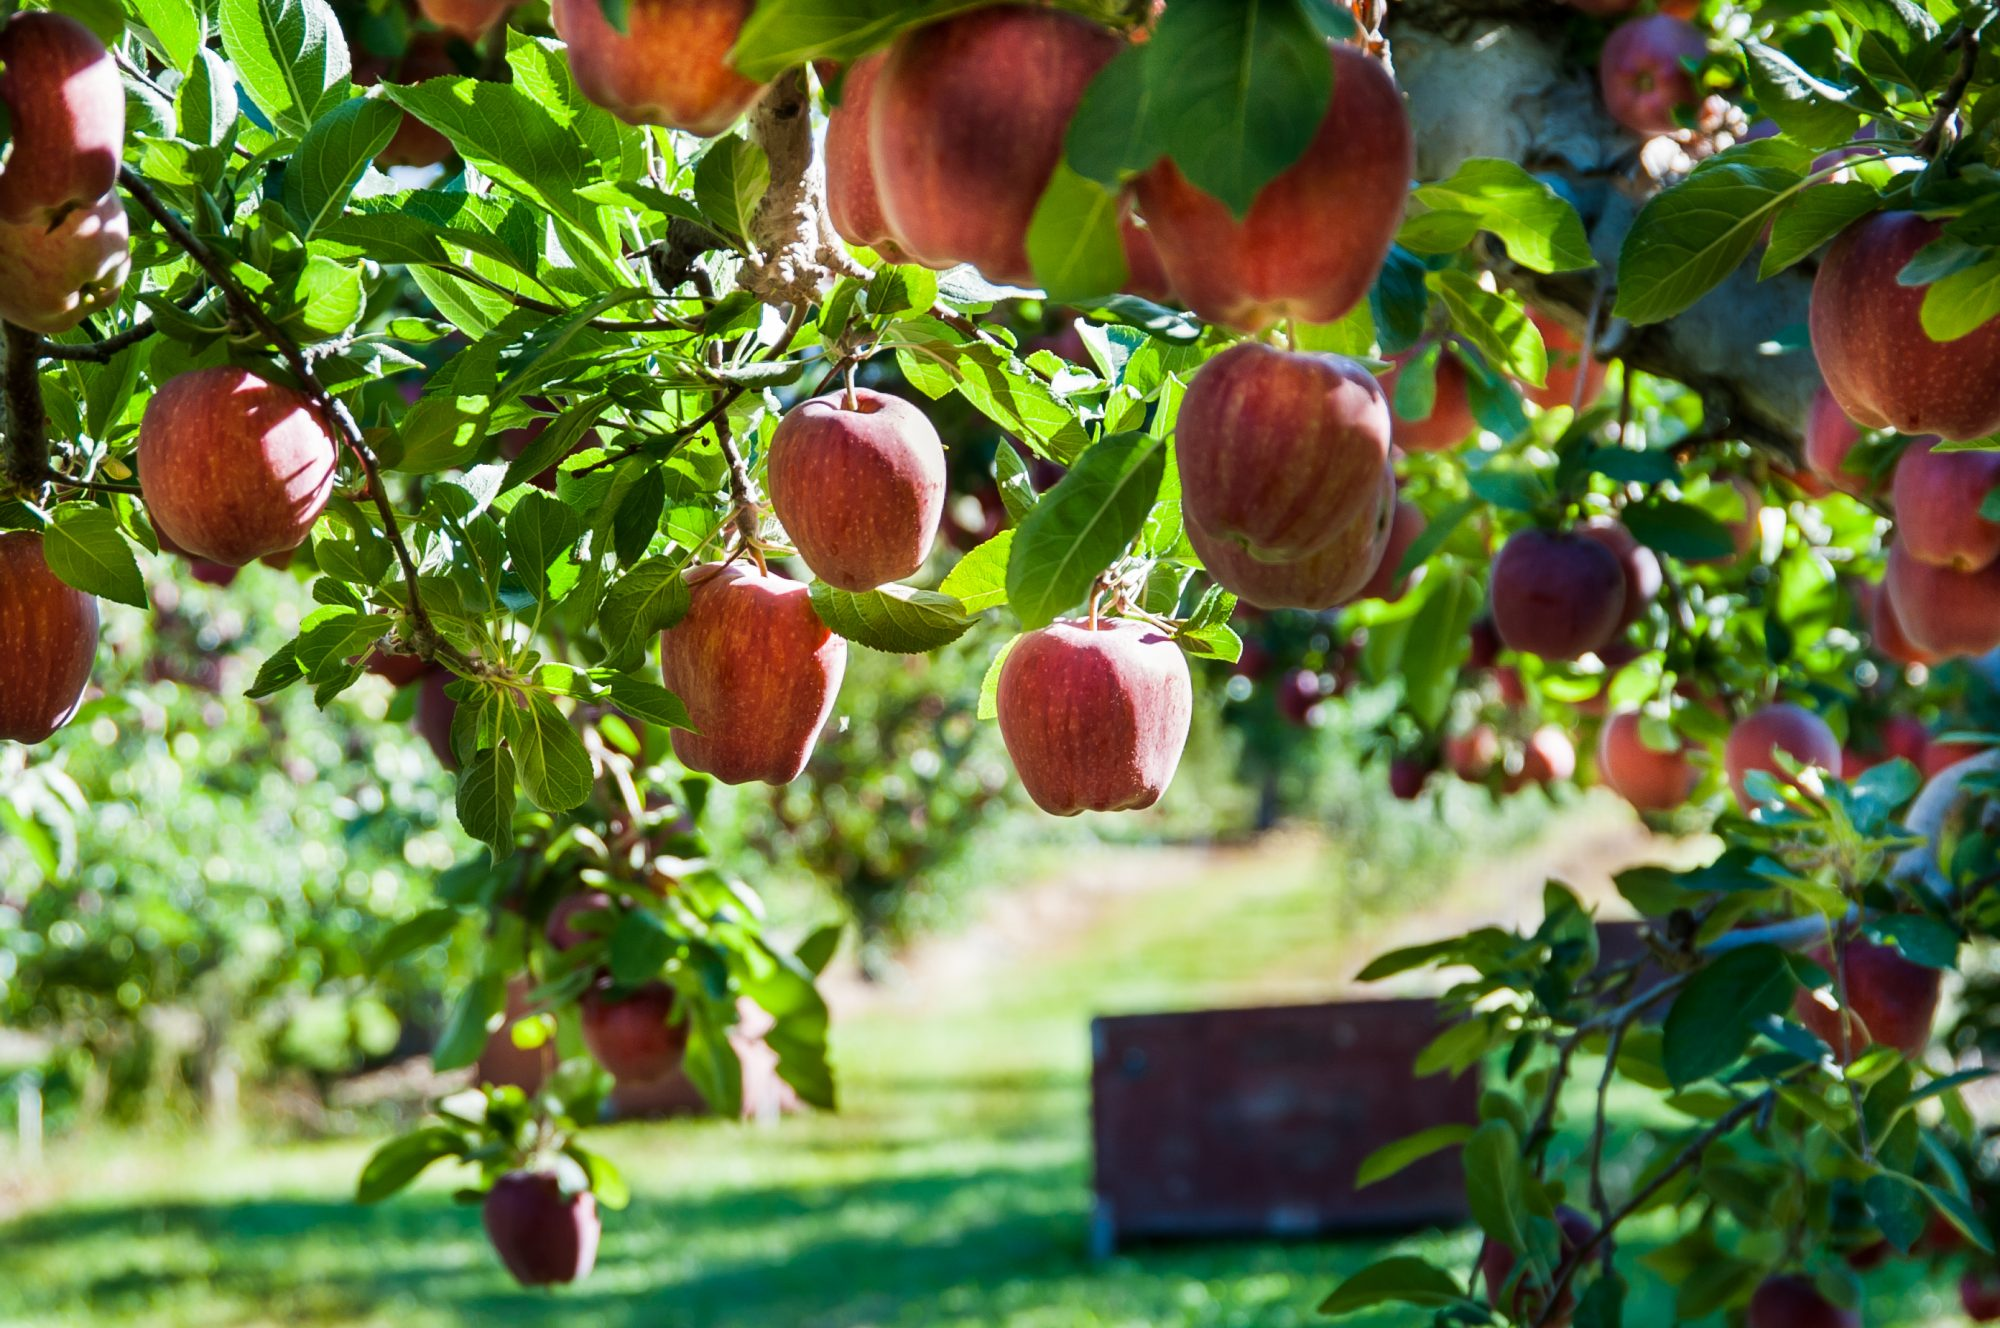 Washington Red Delicious apples on a tree